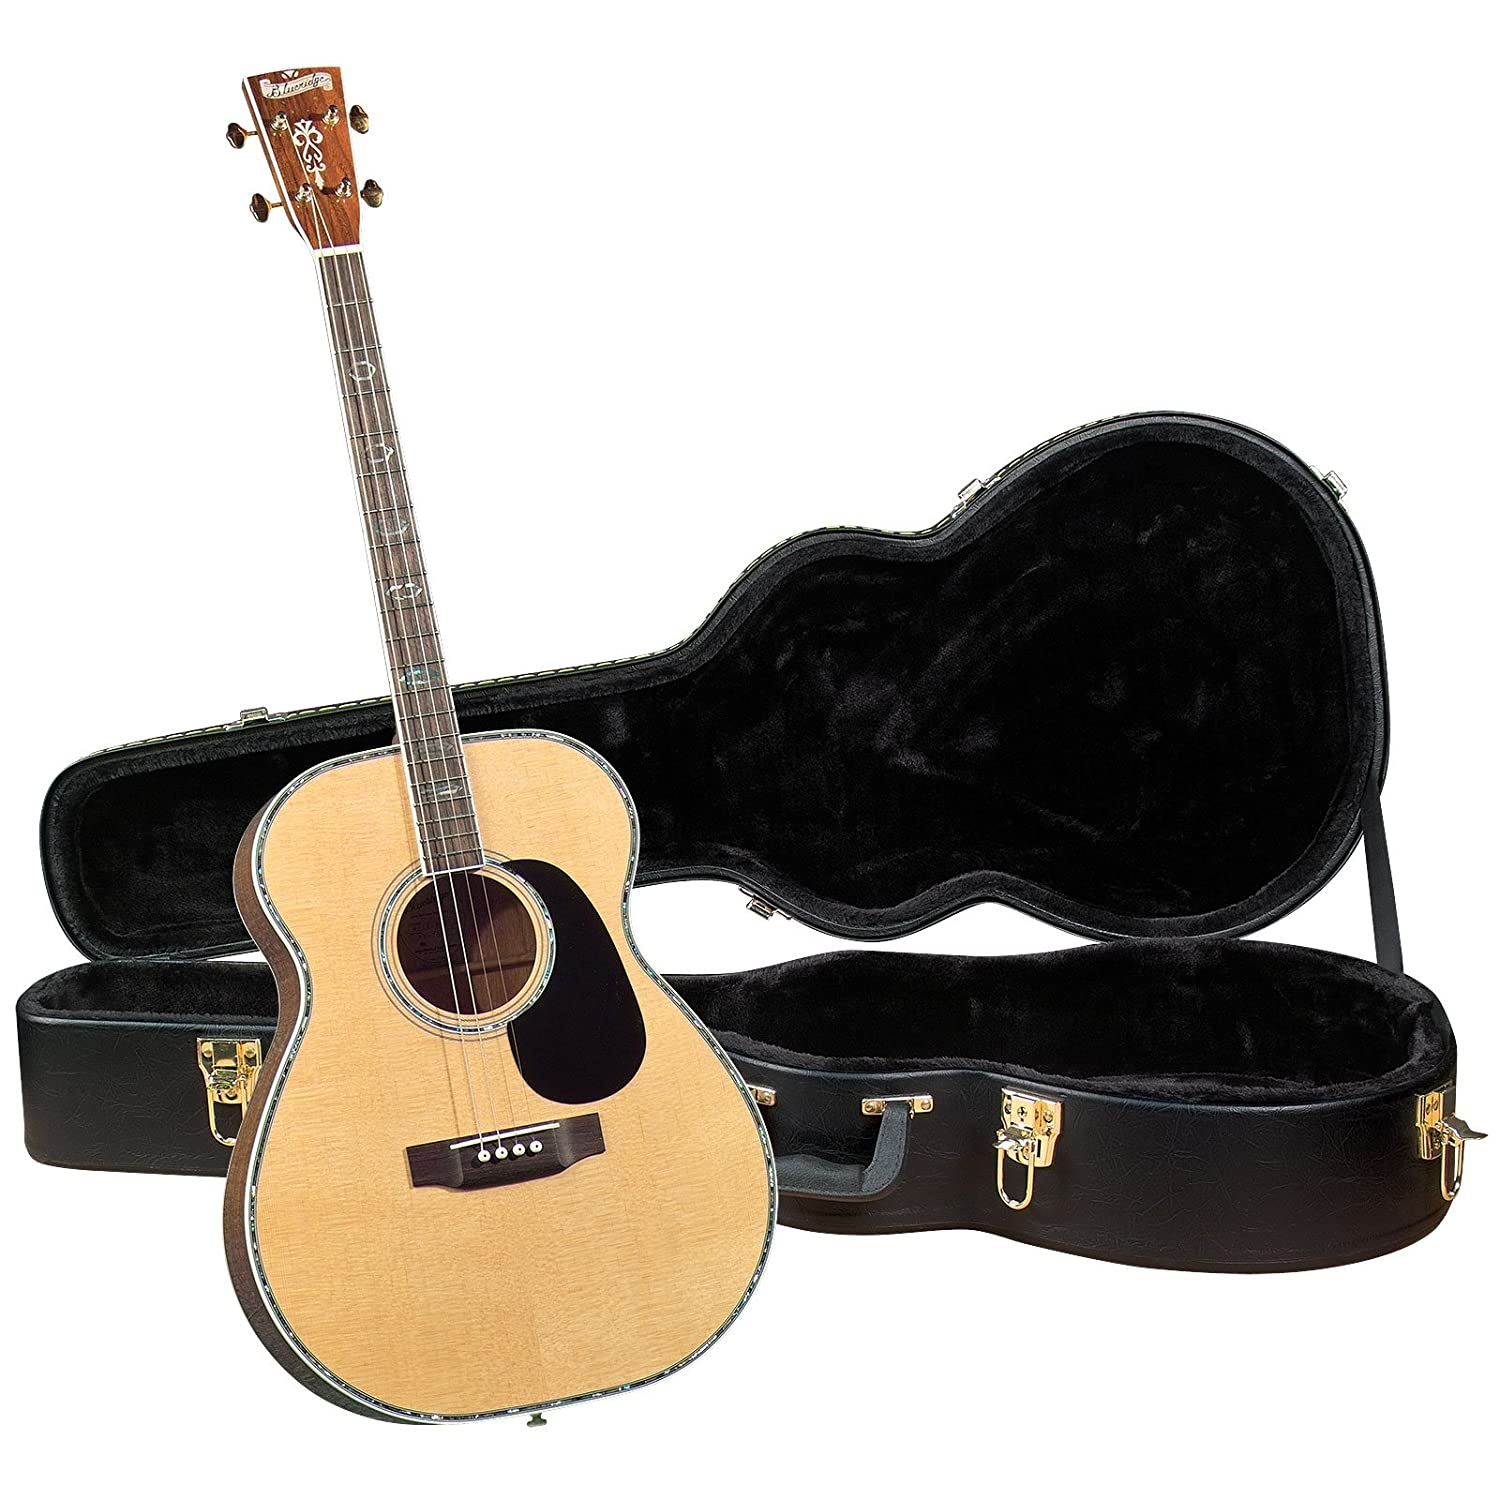 Amazon.com: Blueridge BR-40T Contemporary Series Tenor Guitar with  Hardshell Case: Musical Instruments